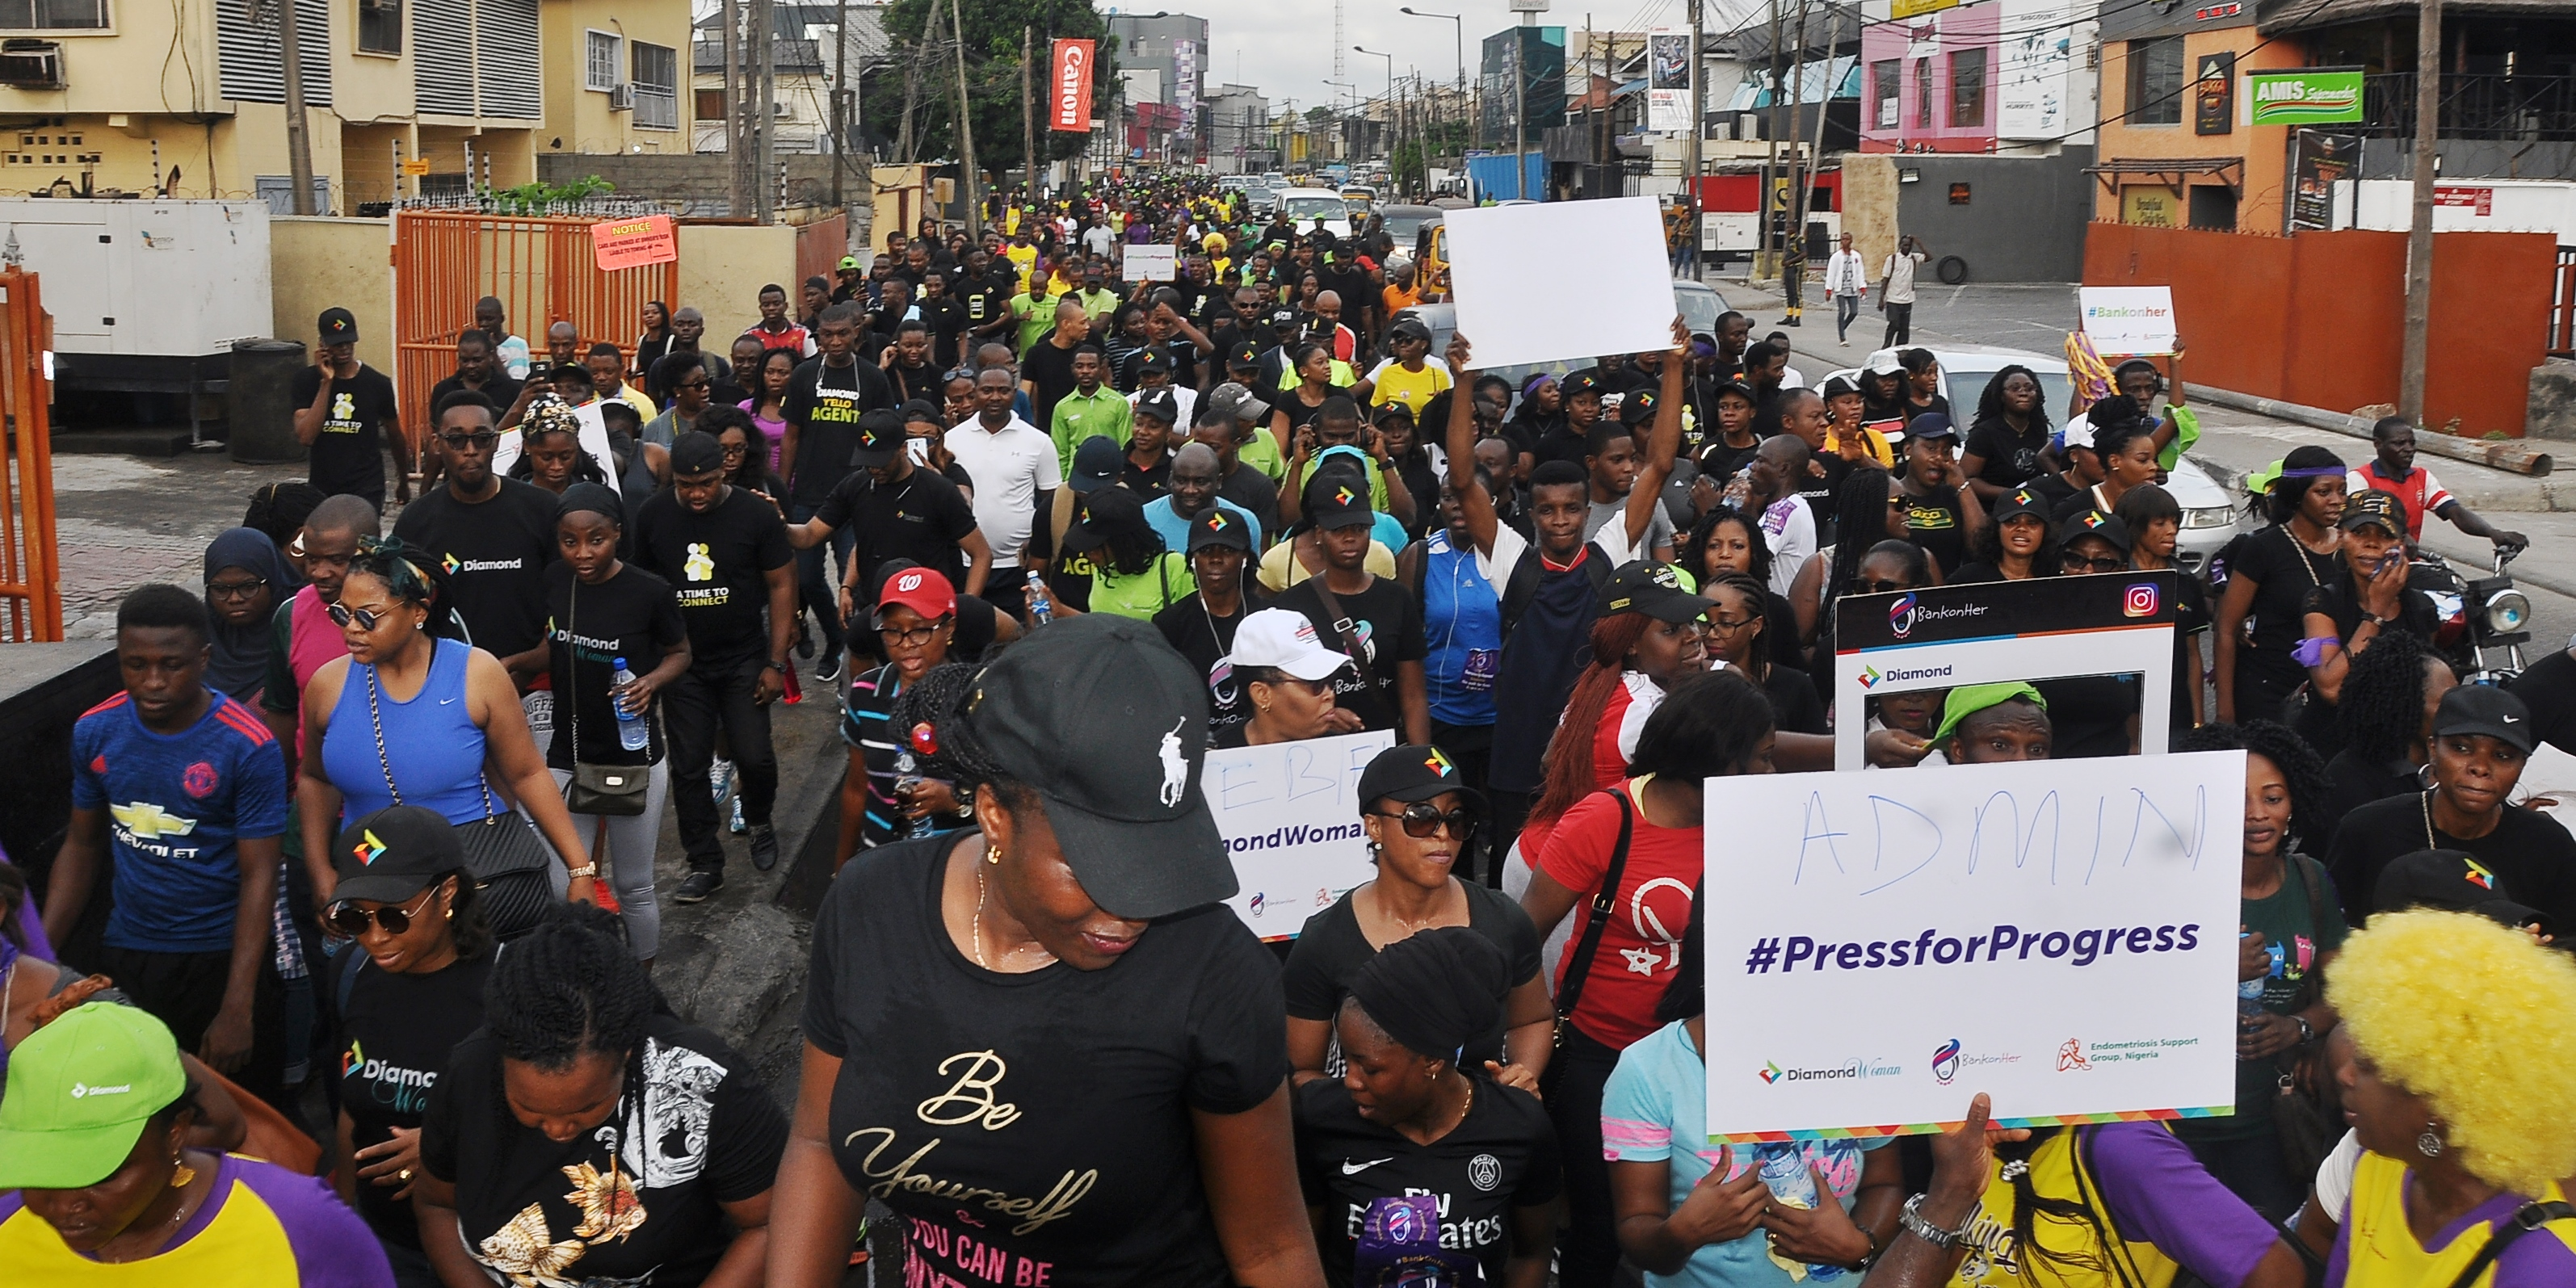 Diamond bank marches to end endometriosis